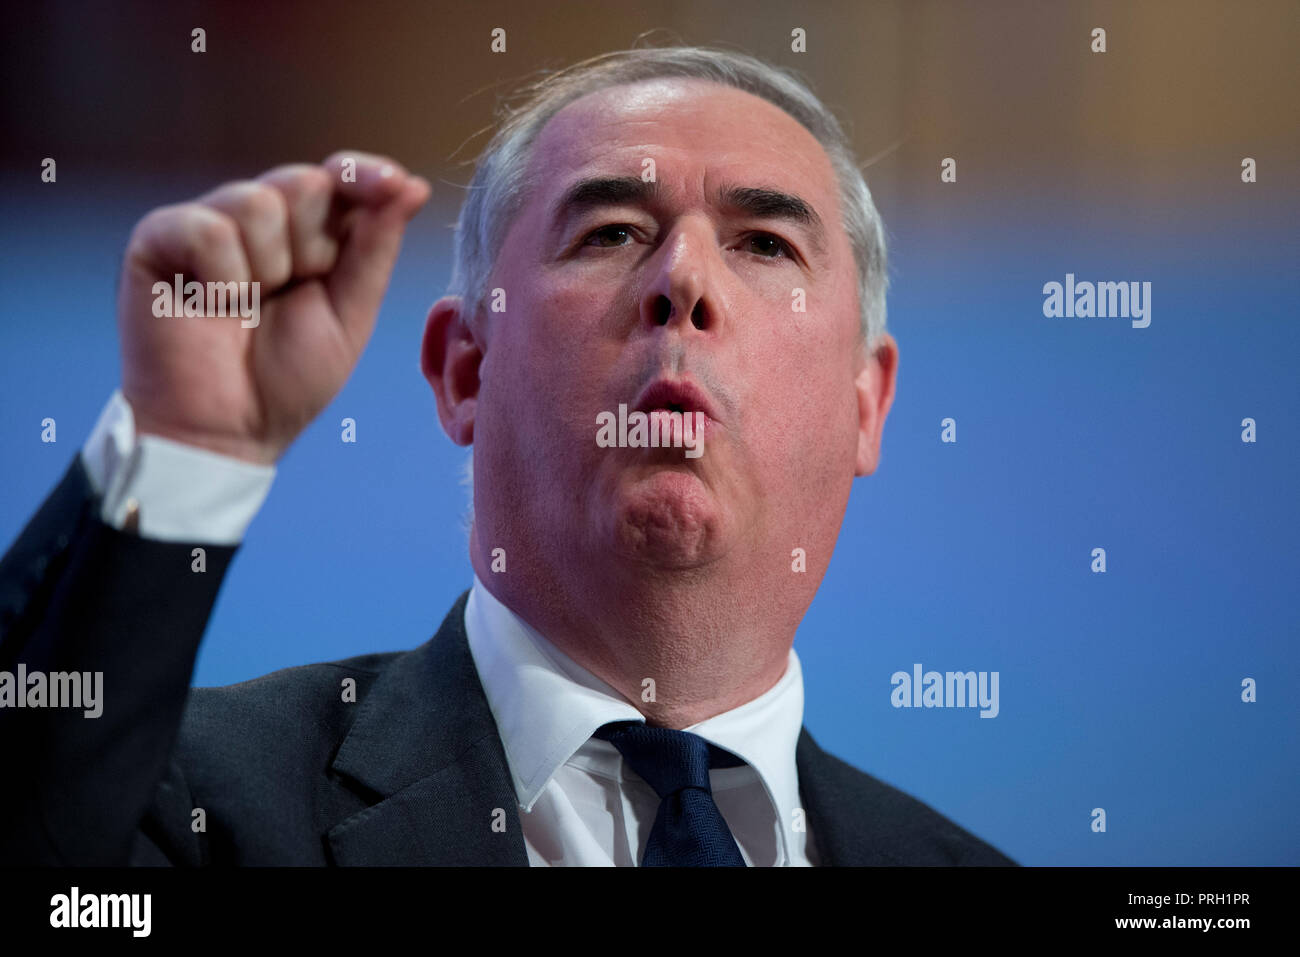 Birmingham, UK. 3rd October 2018. Geoffrey Cox MP, The Attorney General, speaks at the Conservative Party Conference in Birmingham. © Russell Hart/Alamy Live News. - Stock Image